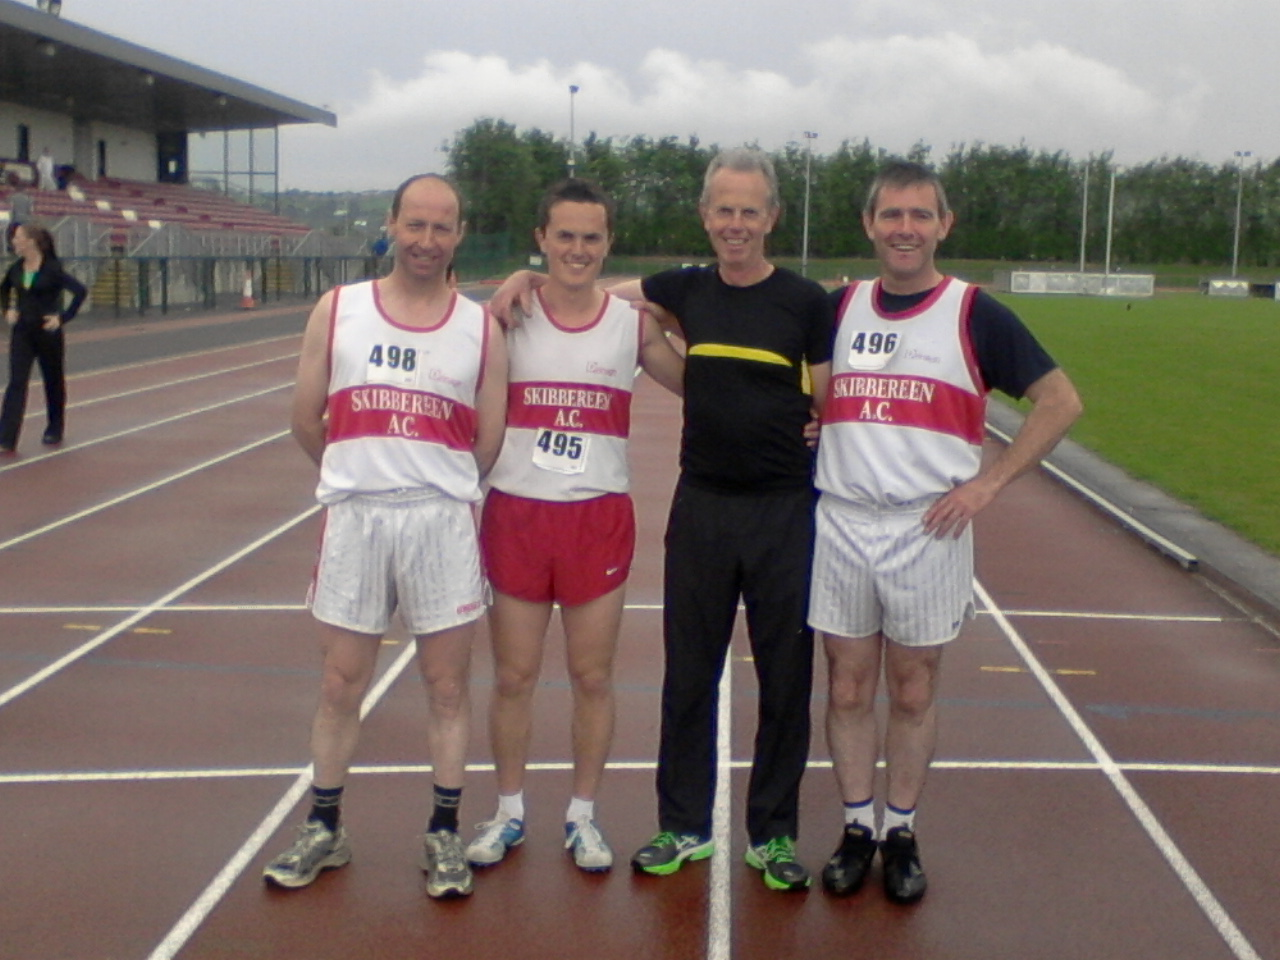 Paddy O'Brien, John Collins, Andy Collins and John McCarthy